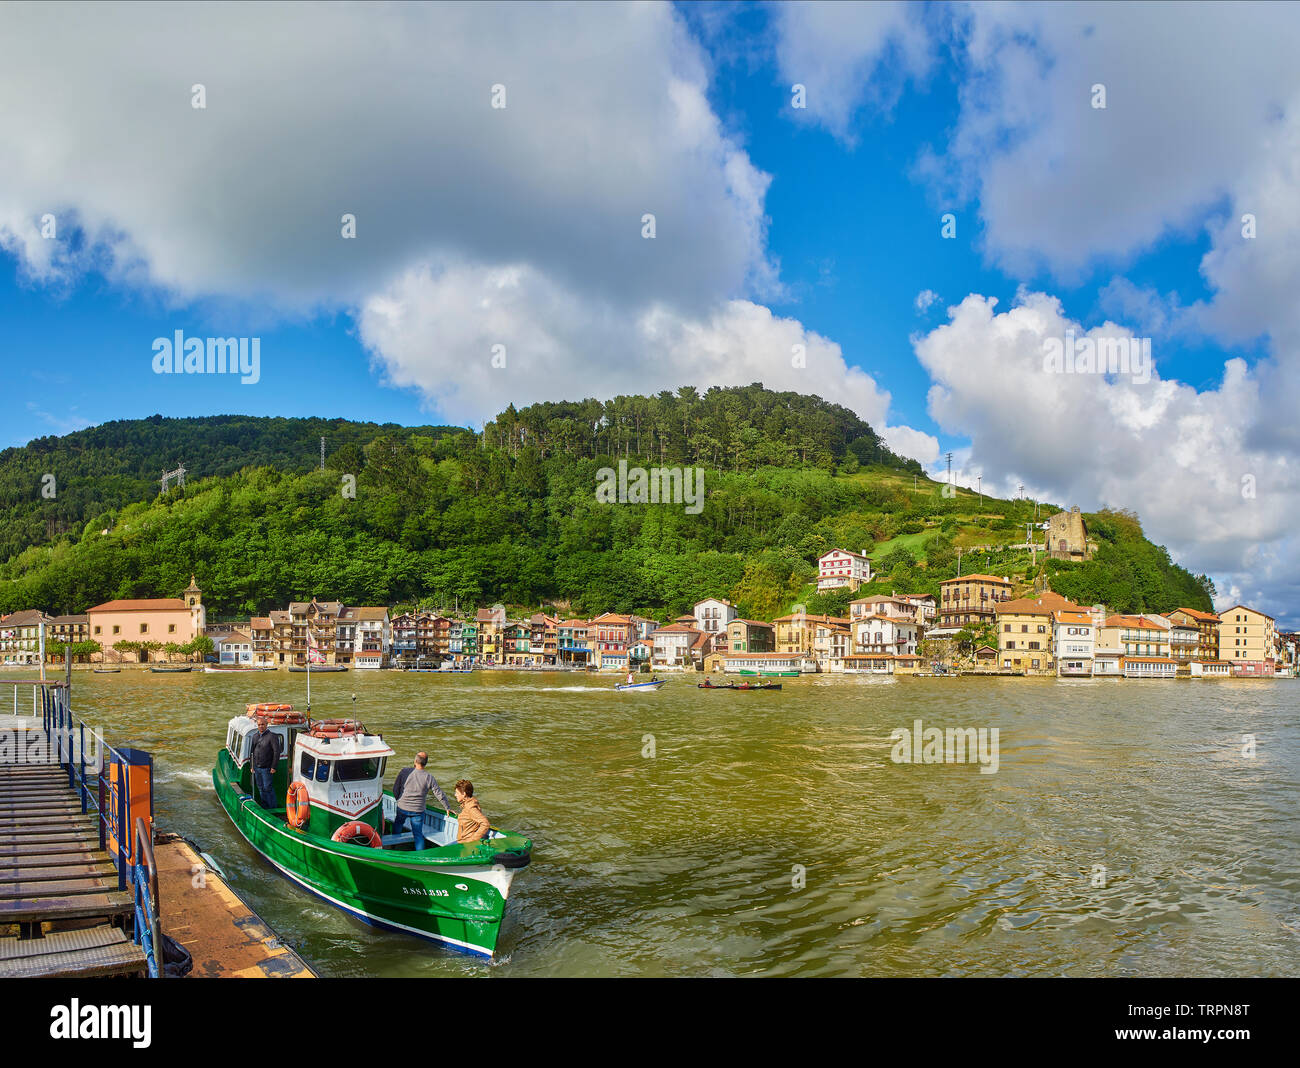 Pasajes de San Juan (Pasai Donibane), Spain - June 5, 2019. Fishing village of Pasajes de San Juan on a sunny day with the Boat crossing service docki - Stock Image